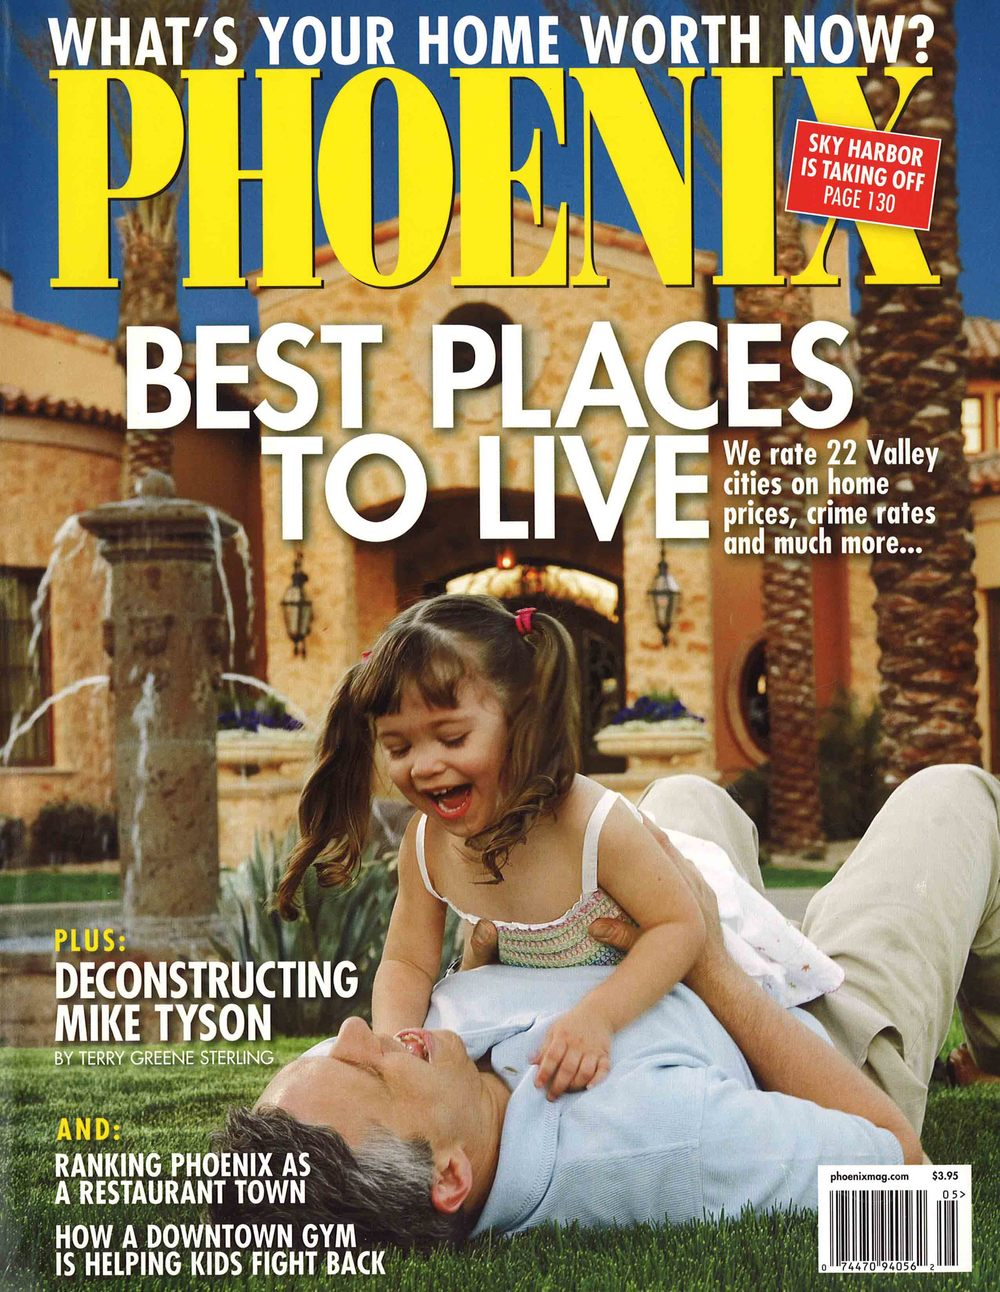 PhxMay07- cover 72.jpg